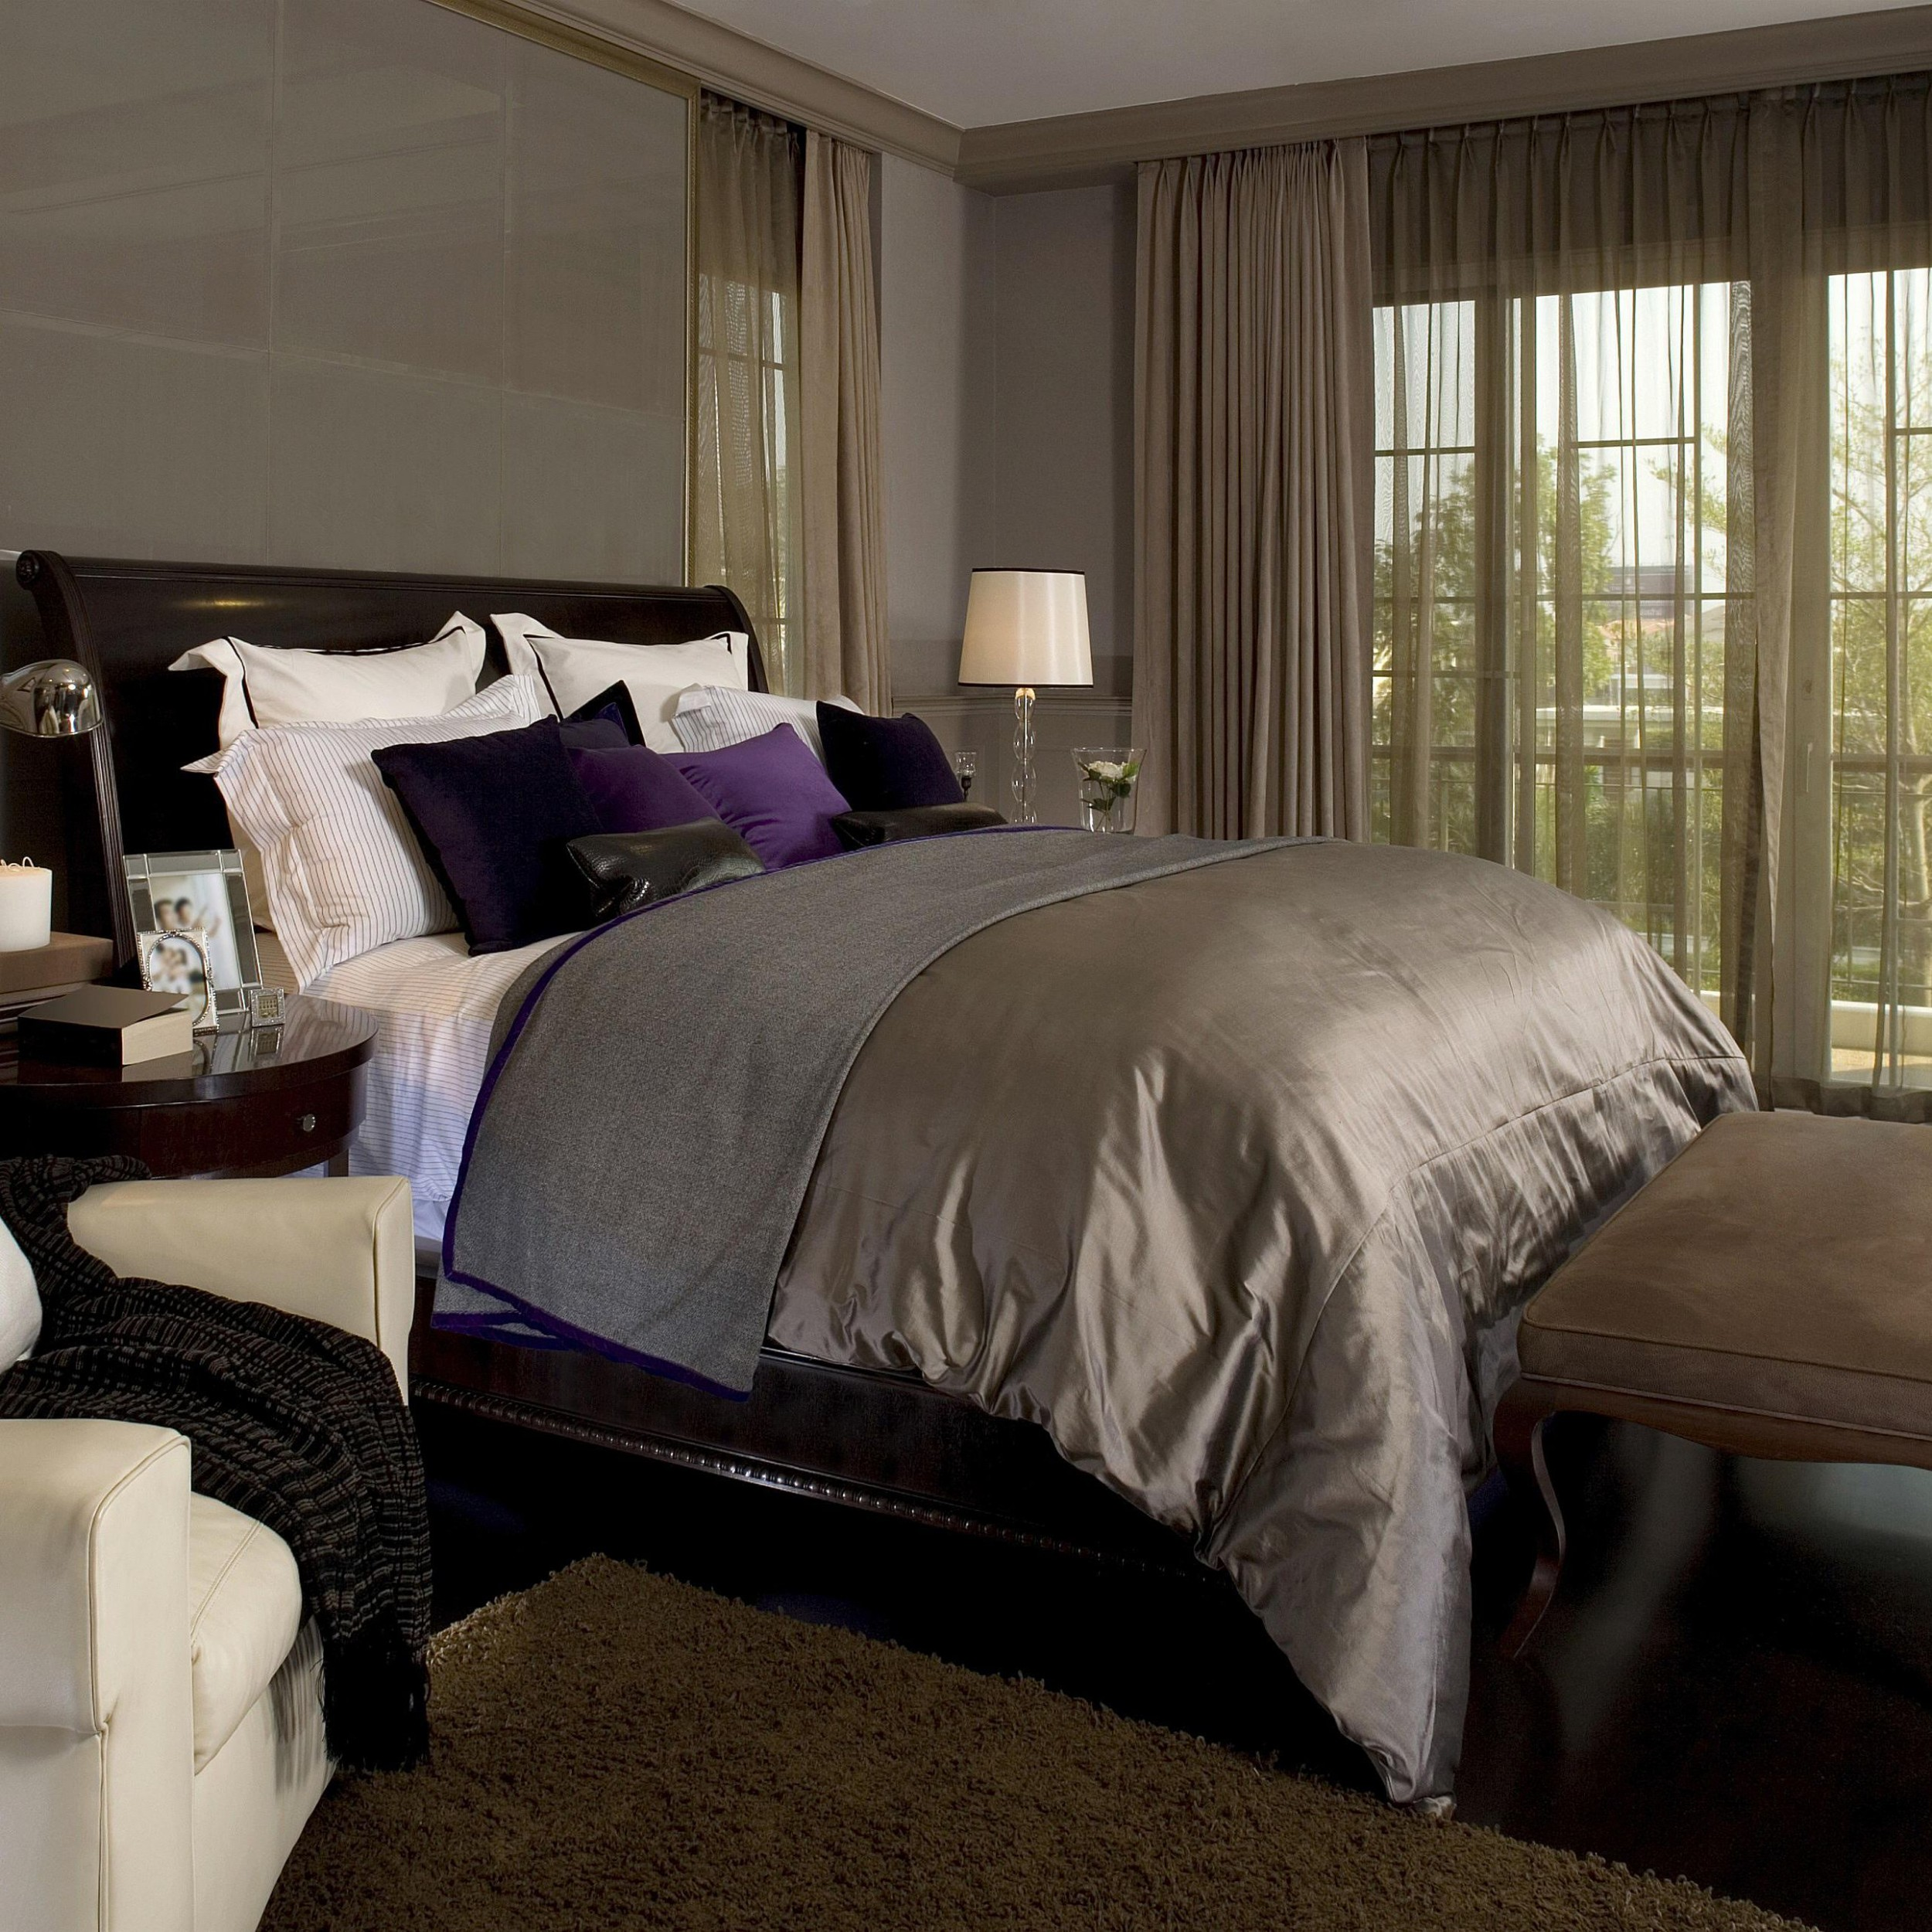 Ideas for Decorating the Bedroom with Brown - Bedroom Ideas Brown